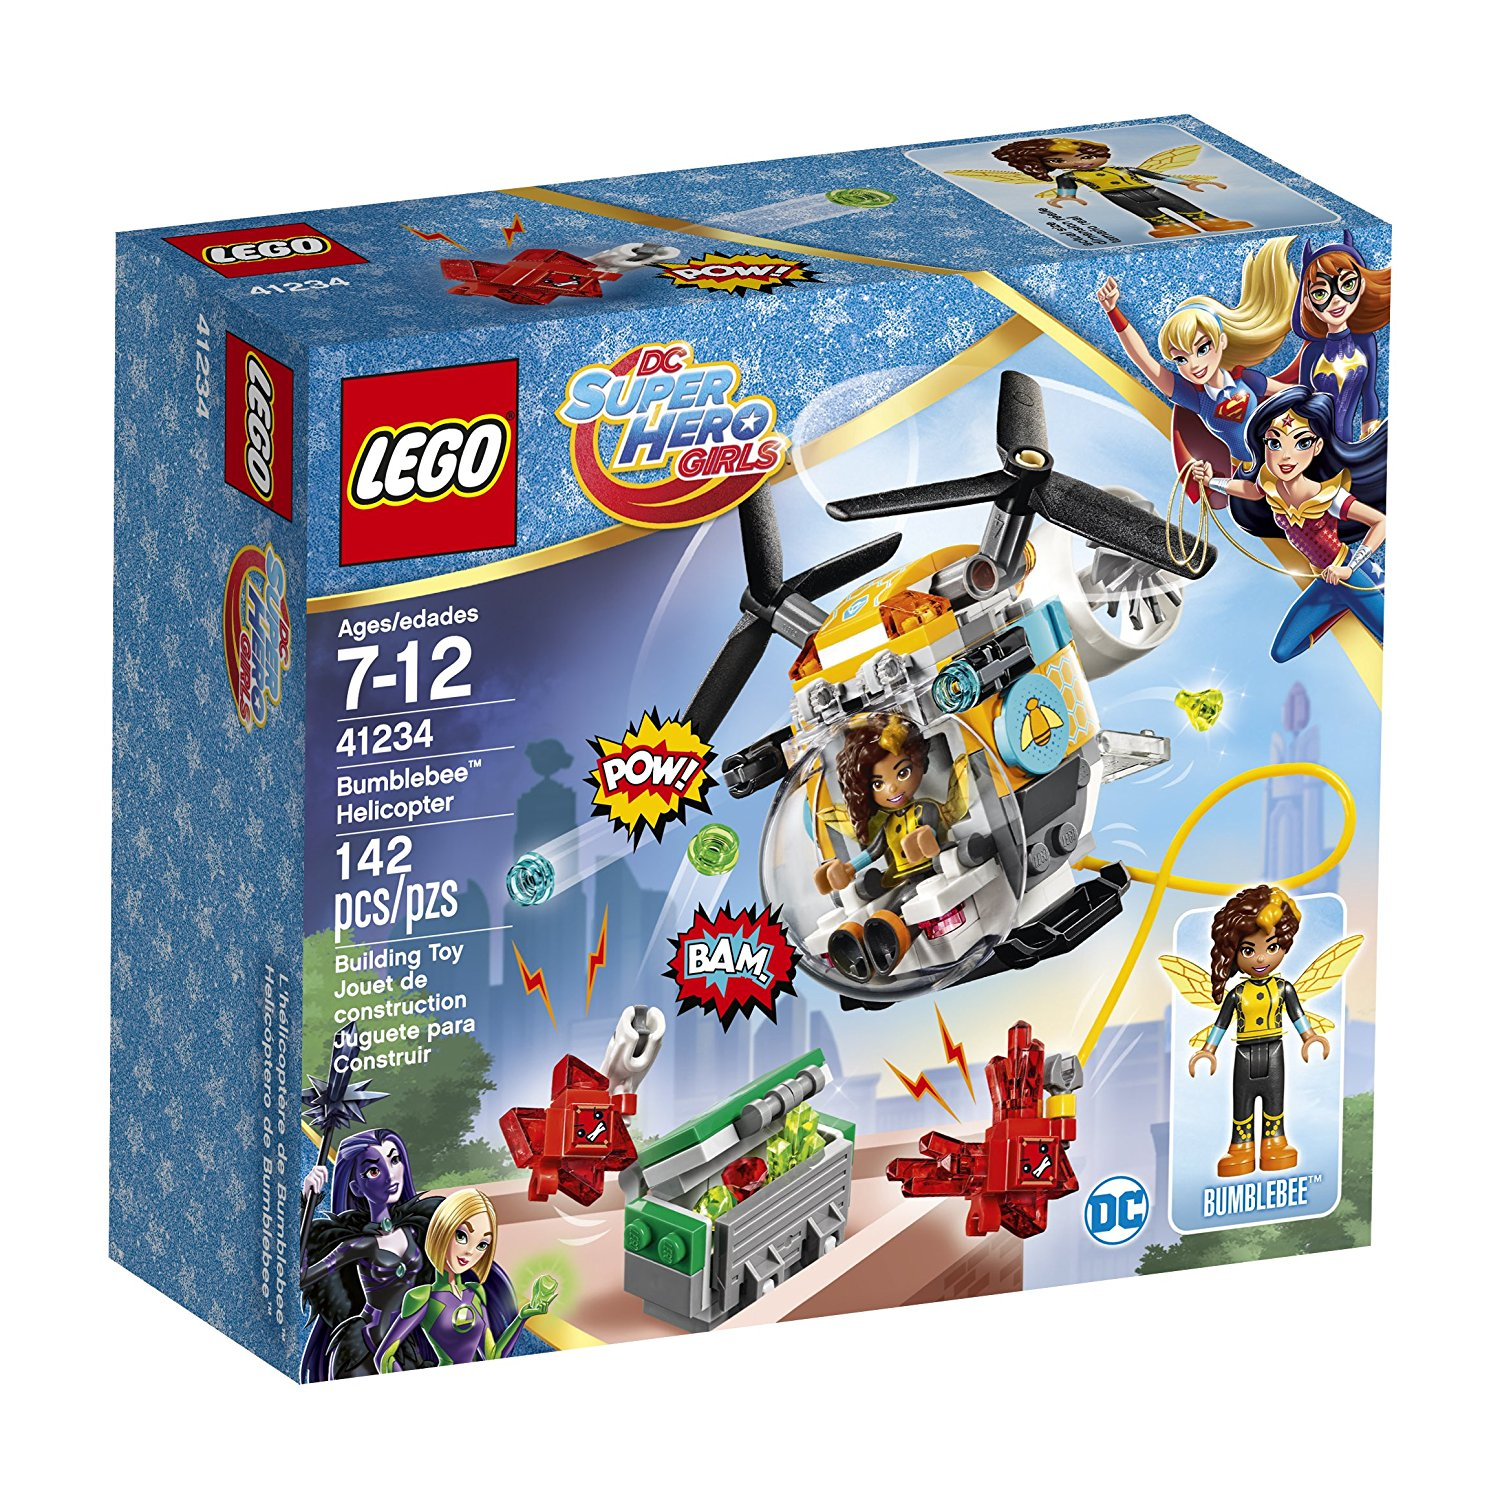 LEGO DC Super Hero Girls Bumblebee Helicopter 41234